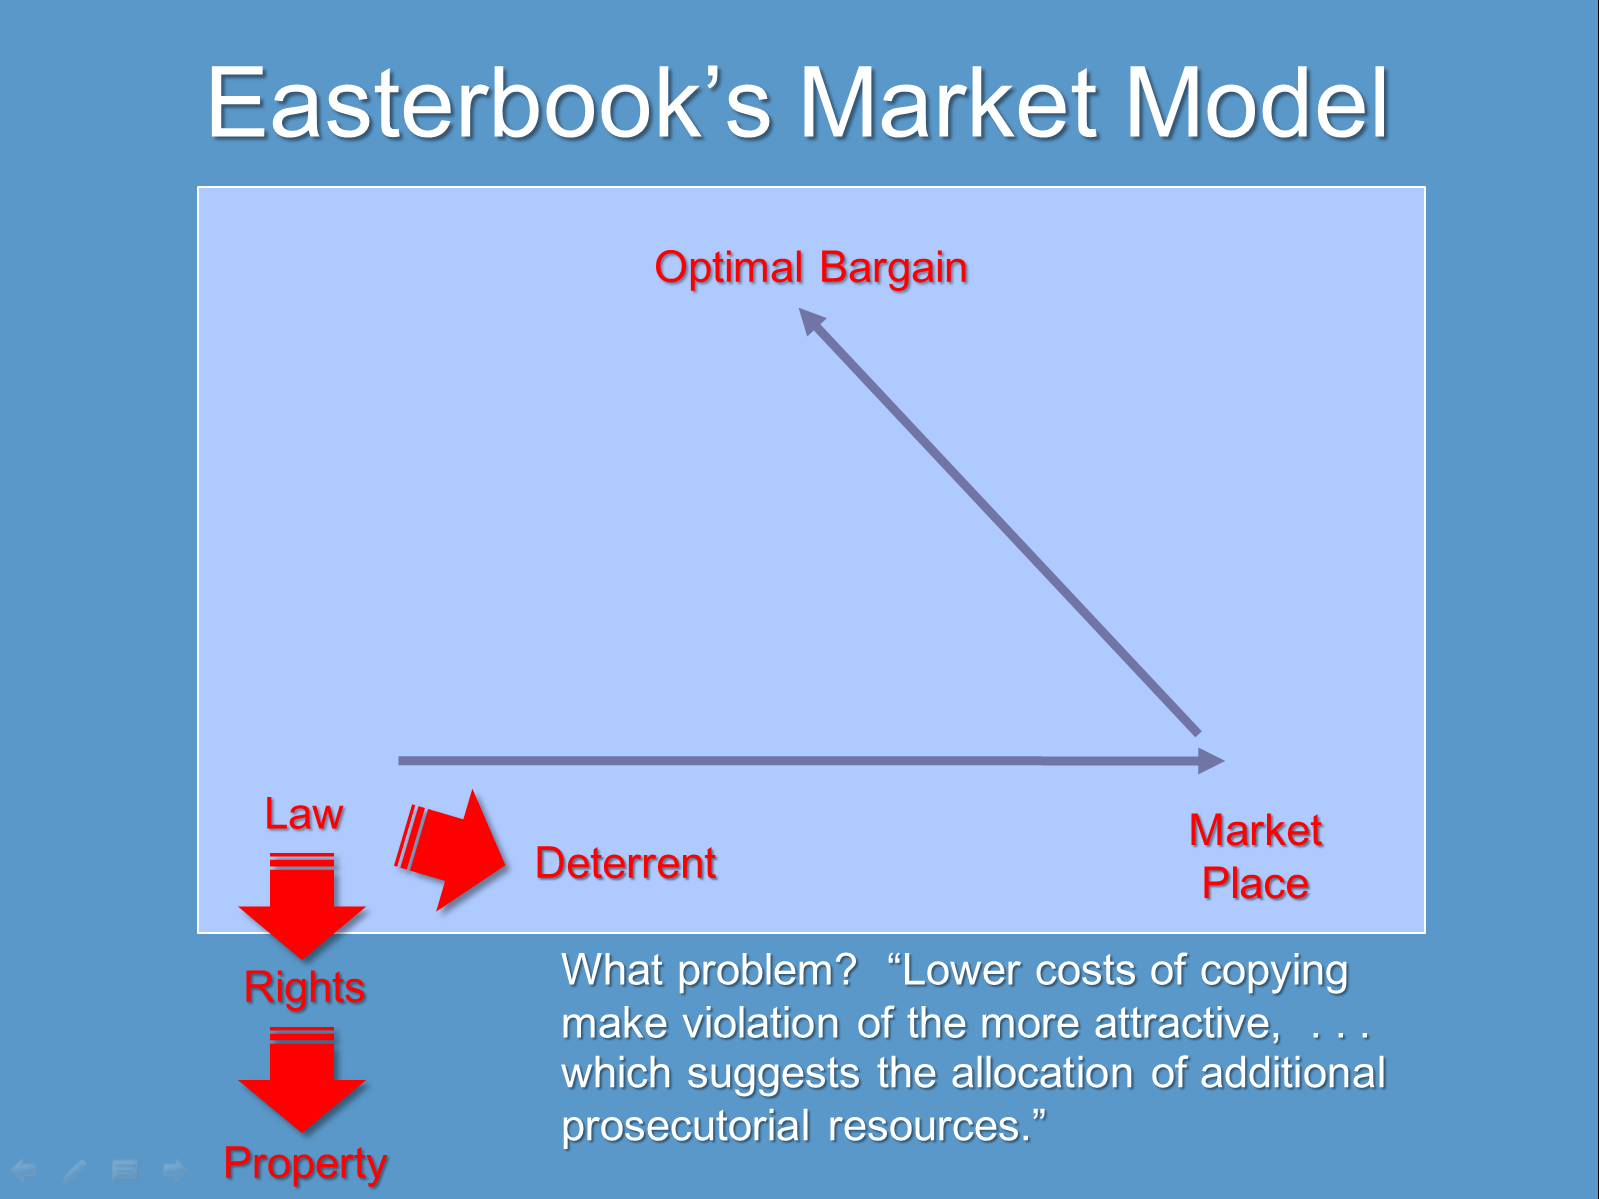 Judge Easterbook's economic model of how cyberspace should be regulated--laws schould define detterents, rights, and the marketplace, which should facilitate an optimal bargain